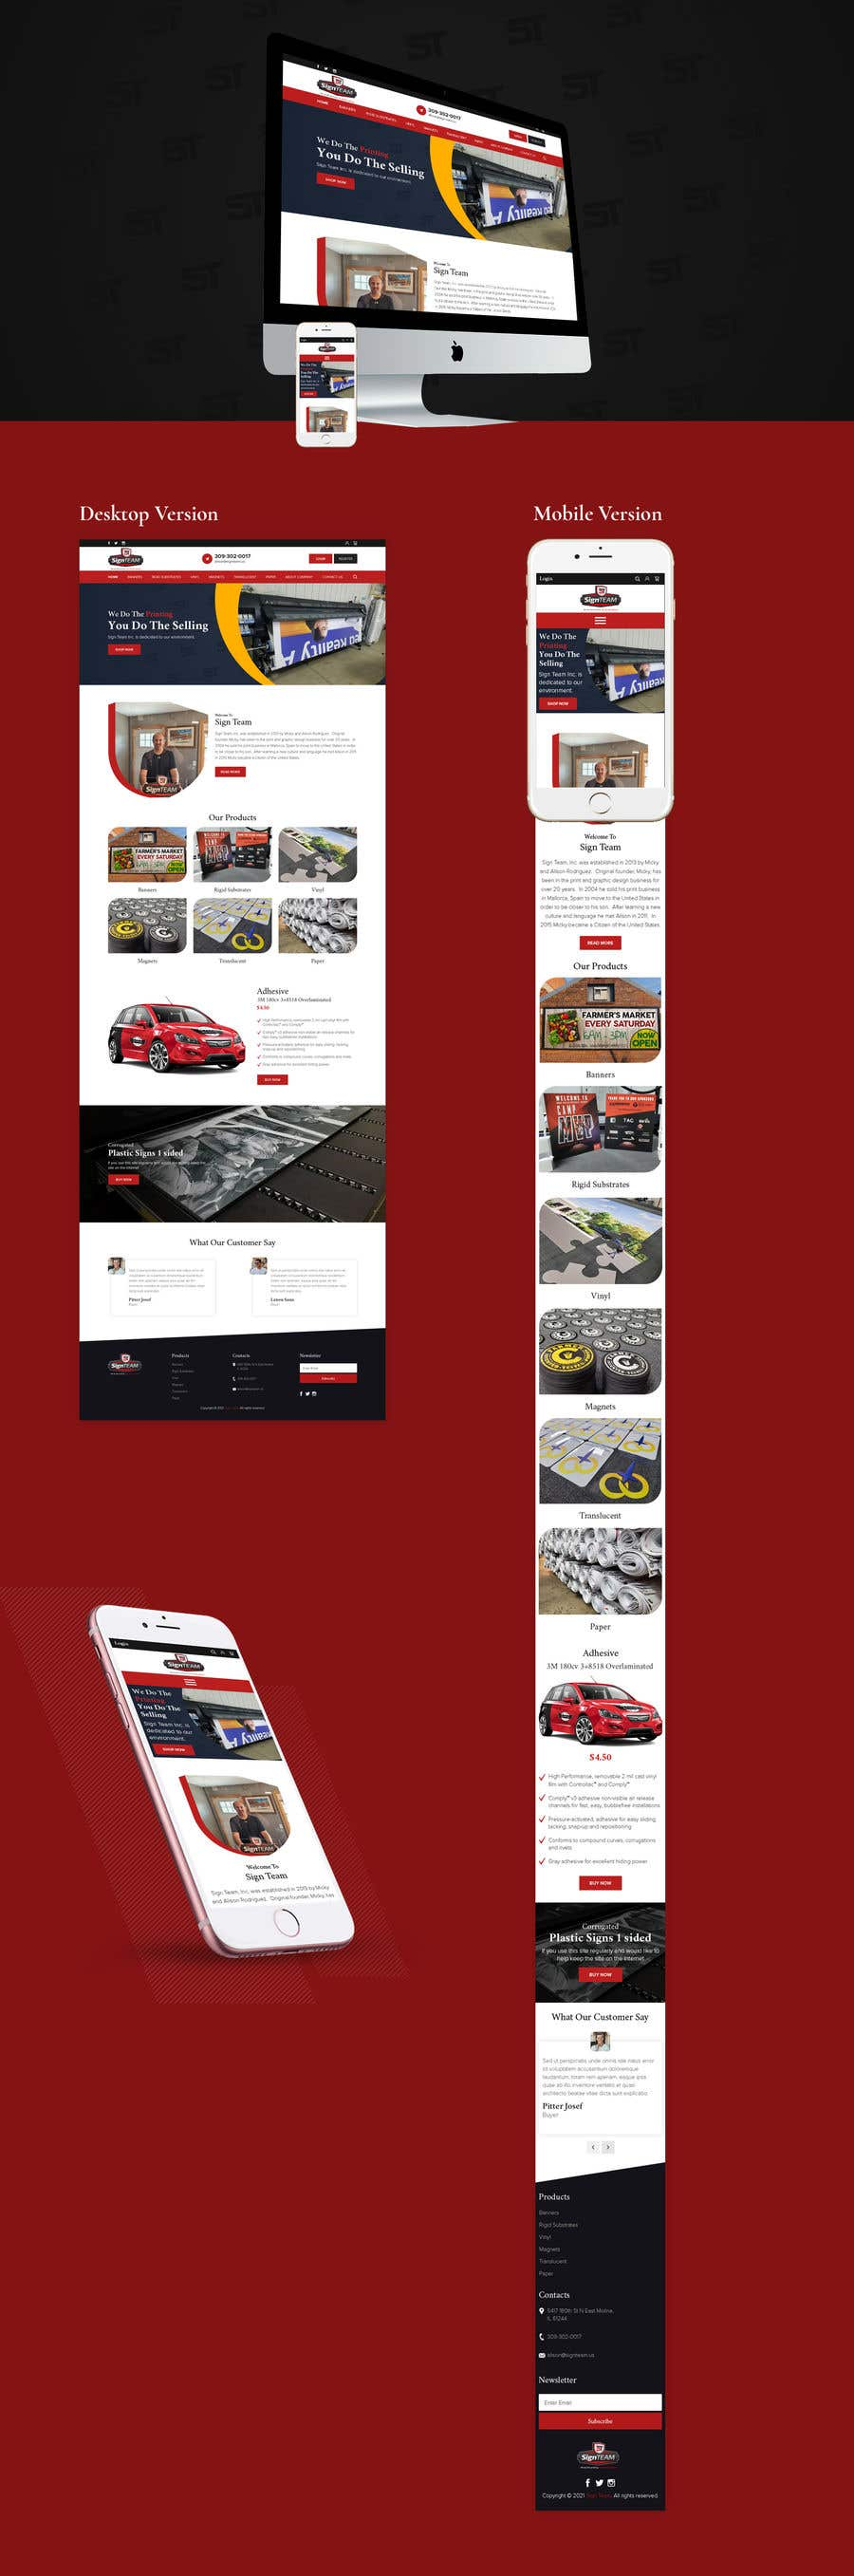 Konkurrenceindlæg #                                        20                                      for                                         Redesign front home page and product page